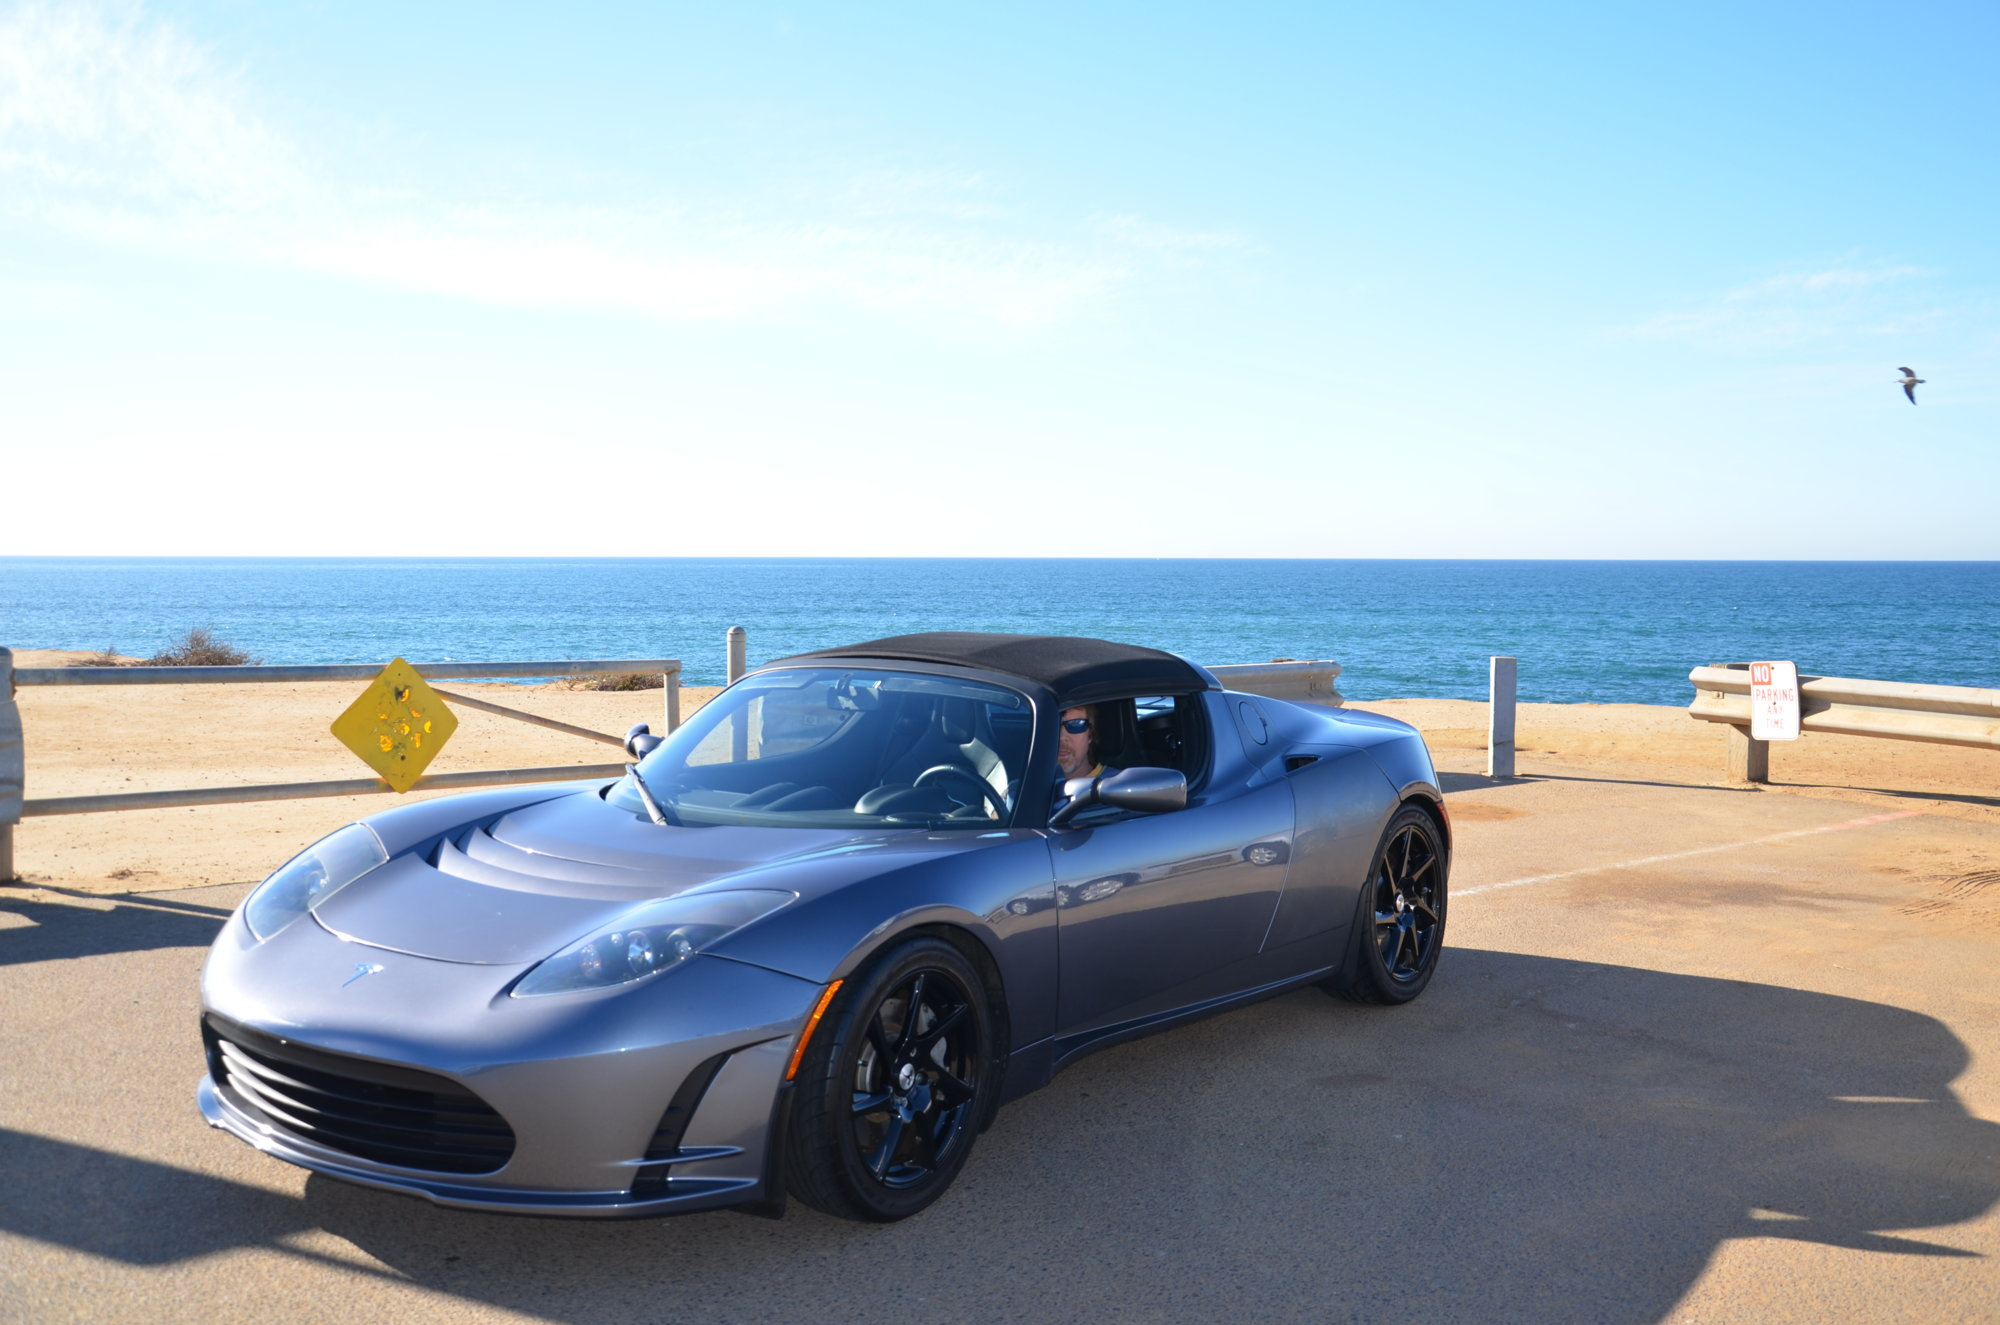 2015-12-18-Tesla-Roadster-on-Sunset-Cliffs-004.JPG